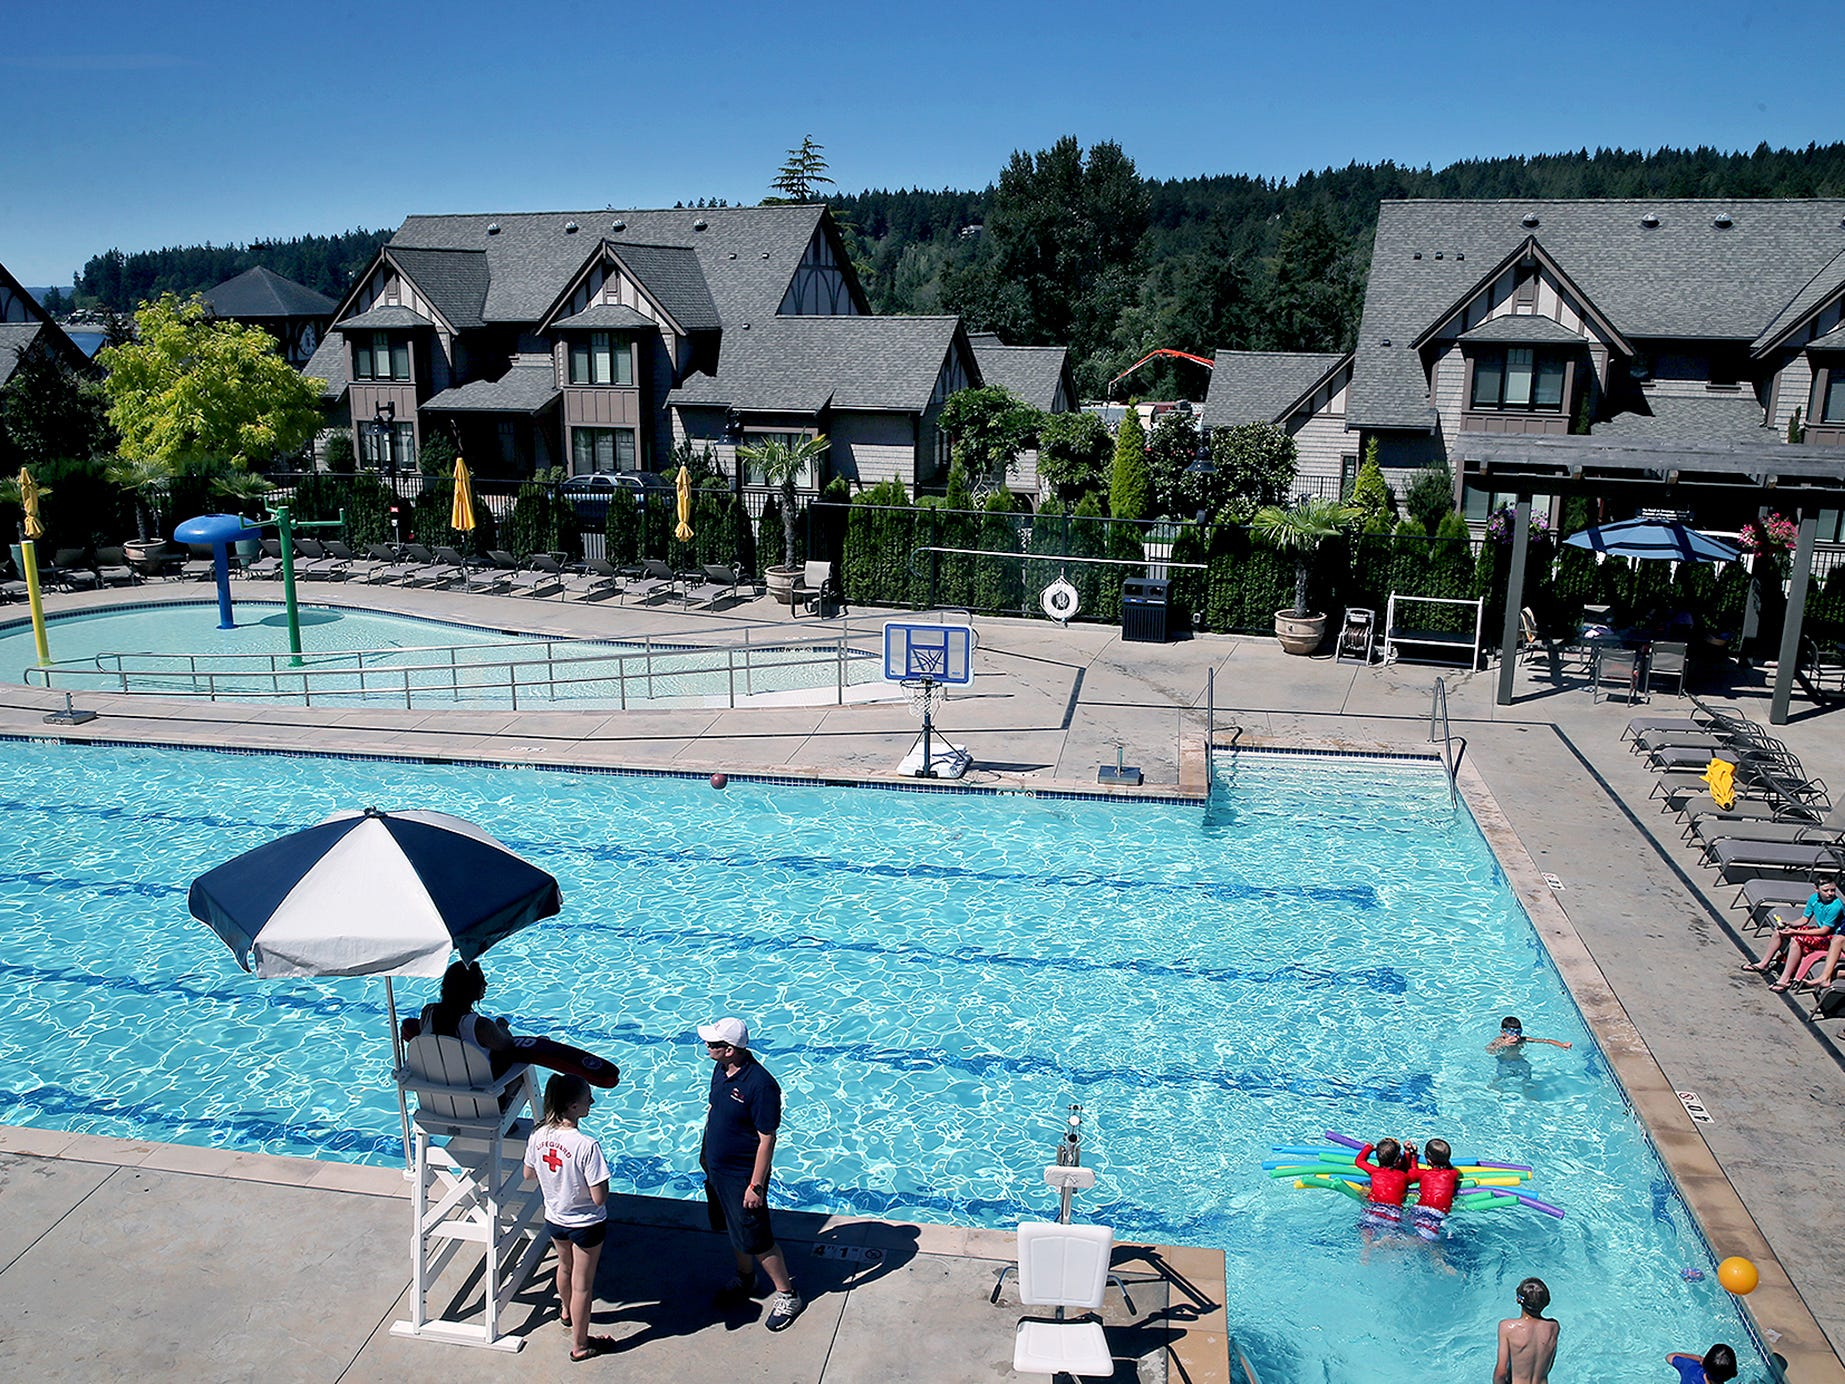 The new Pool at Pleasant Beach Village on Bainbridge Island is is open to the public with a membership.